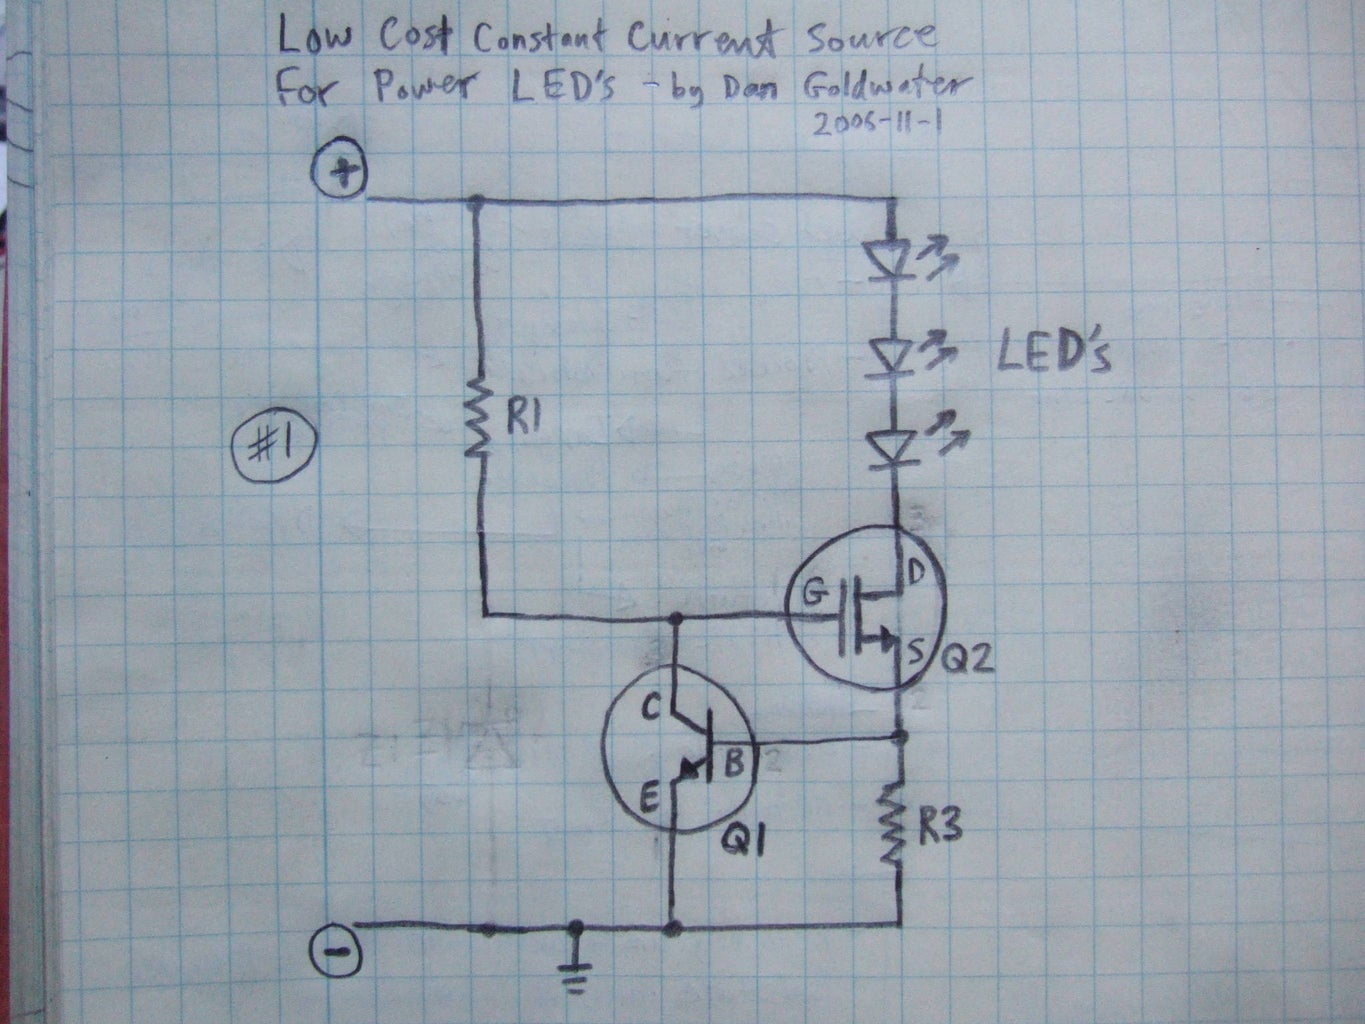 The New Stuff!!  Constant Current Source #1